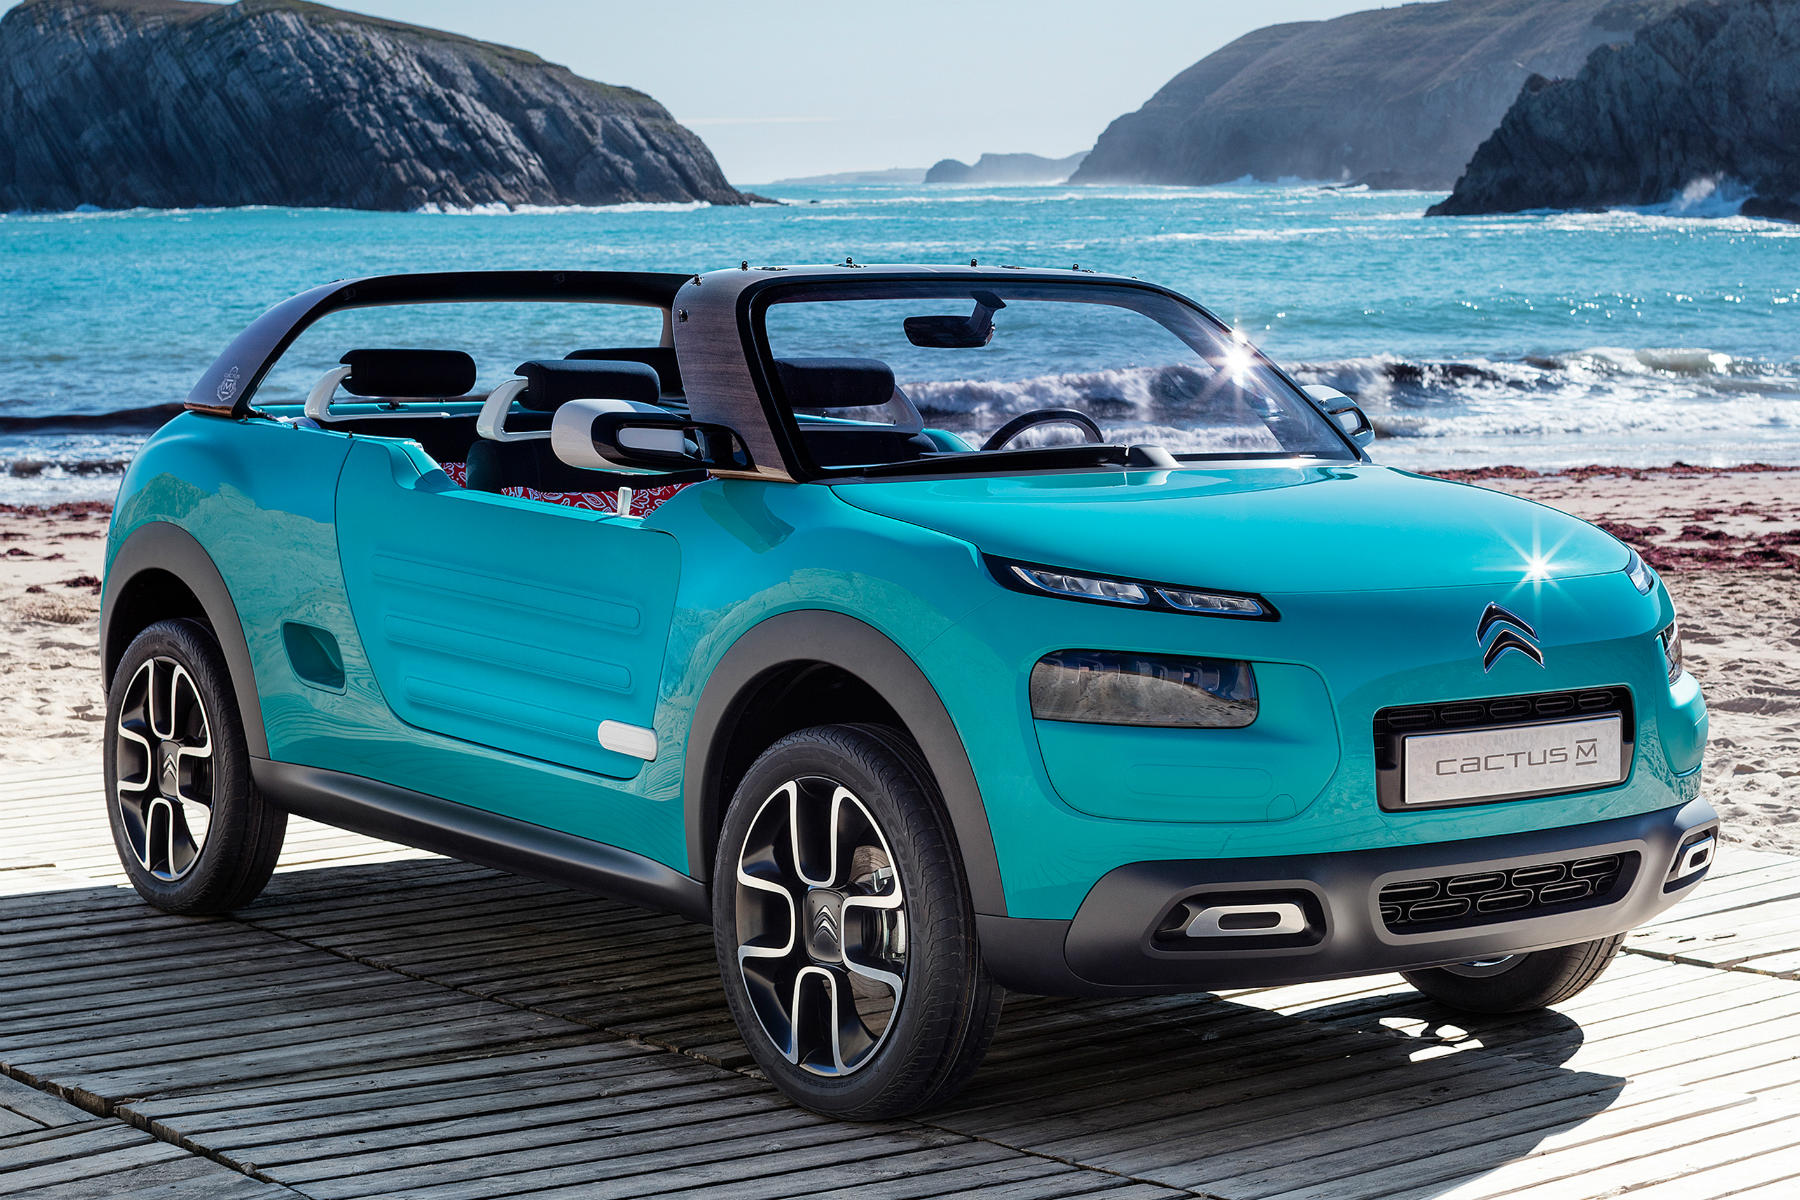 Citroen Cactus M Concept revealed ahead of Frankfurt